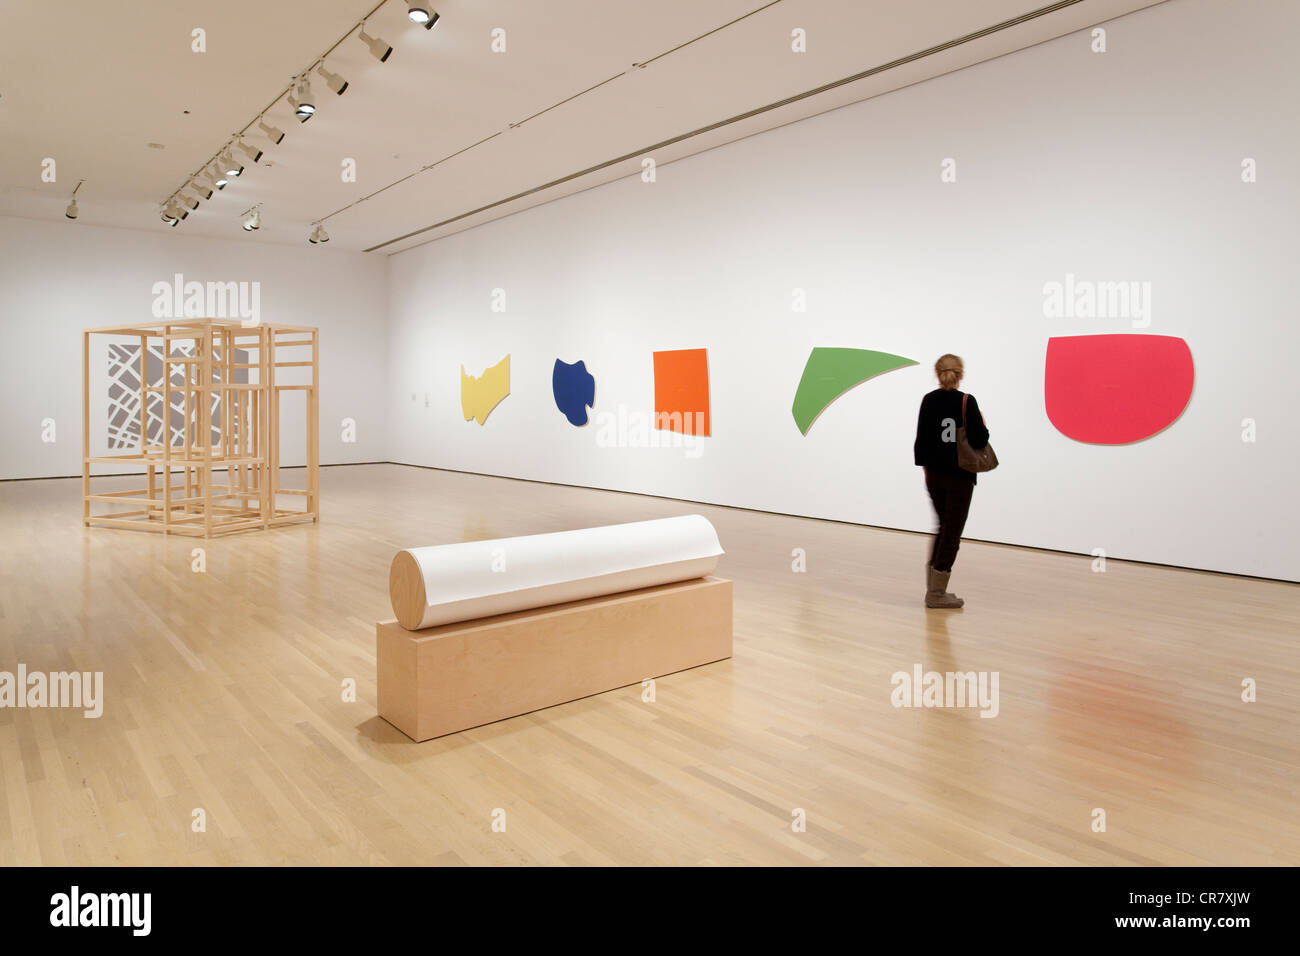 Canada, Quebec, Montreal, museum of contemporary art, MAC, exhibition by Francine Savard - Stock Image